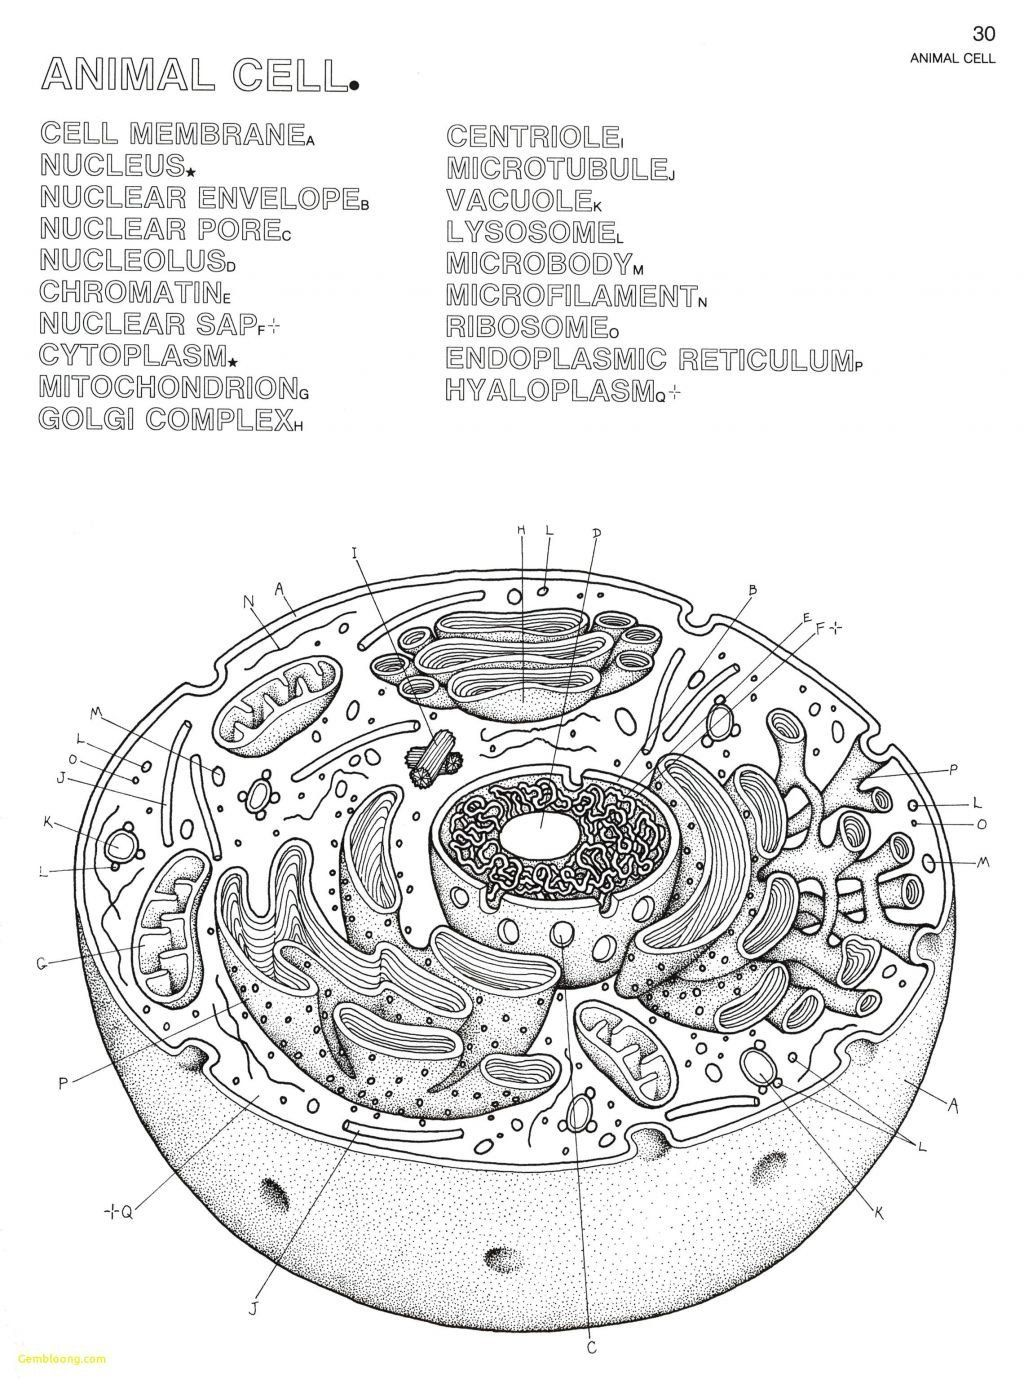 Animal Cells Coloring Worksheet Coloring Pages Animal Cell Coloring Sheet Coloring Pages Cells Worksheet Animal Cells Worksheet Plant And Animal Cells [ 1384 x 1024 Pixel ]